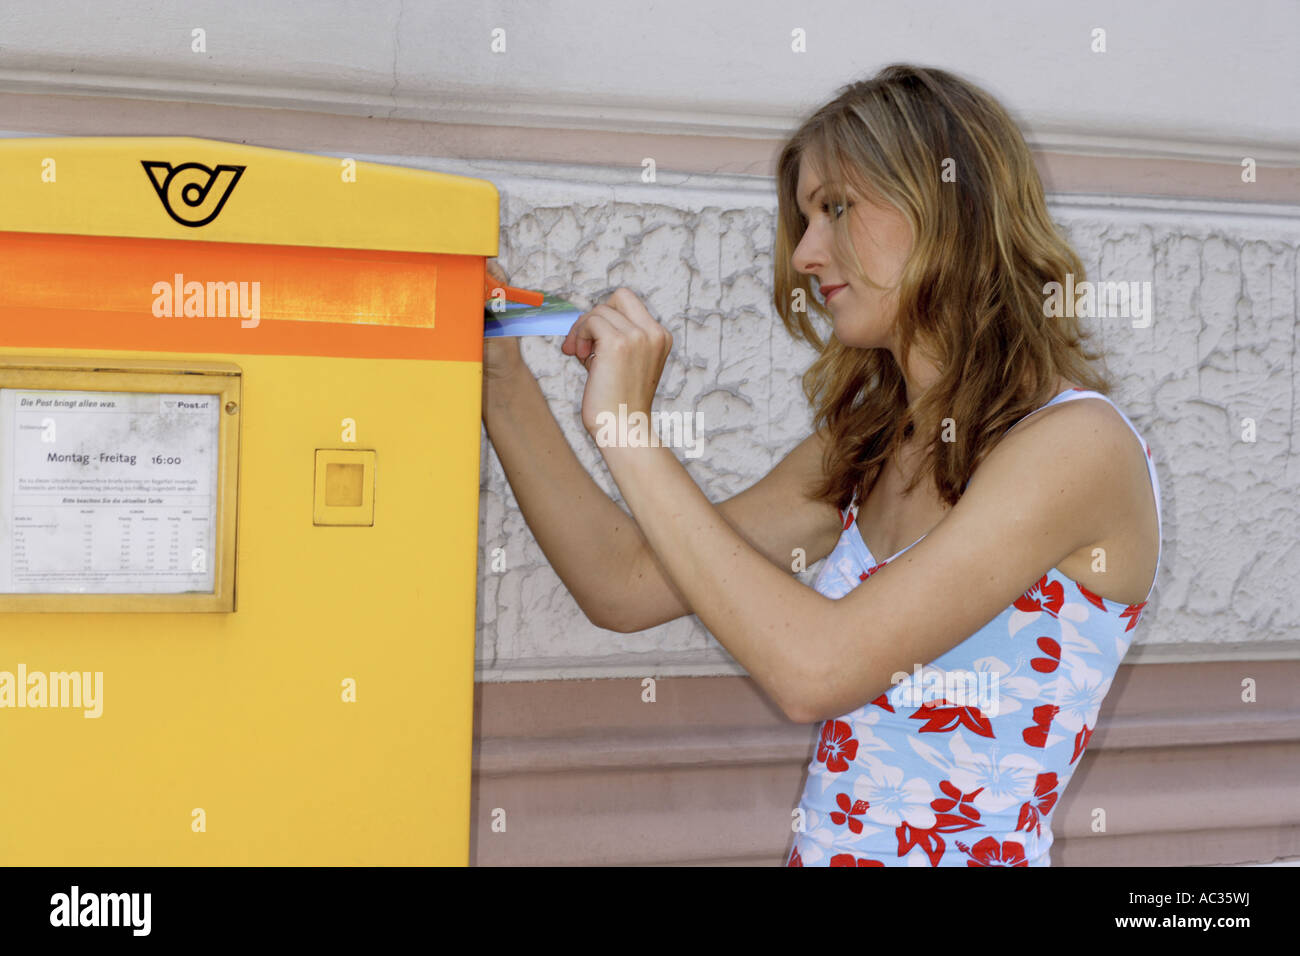 young woman in front of a letterbox, Austria Stock Photo